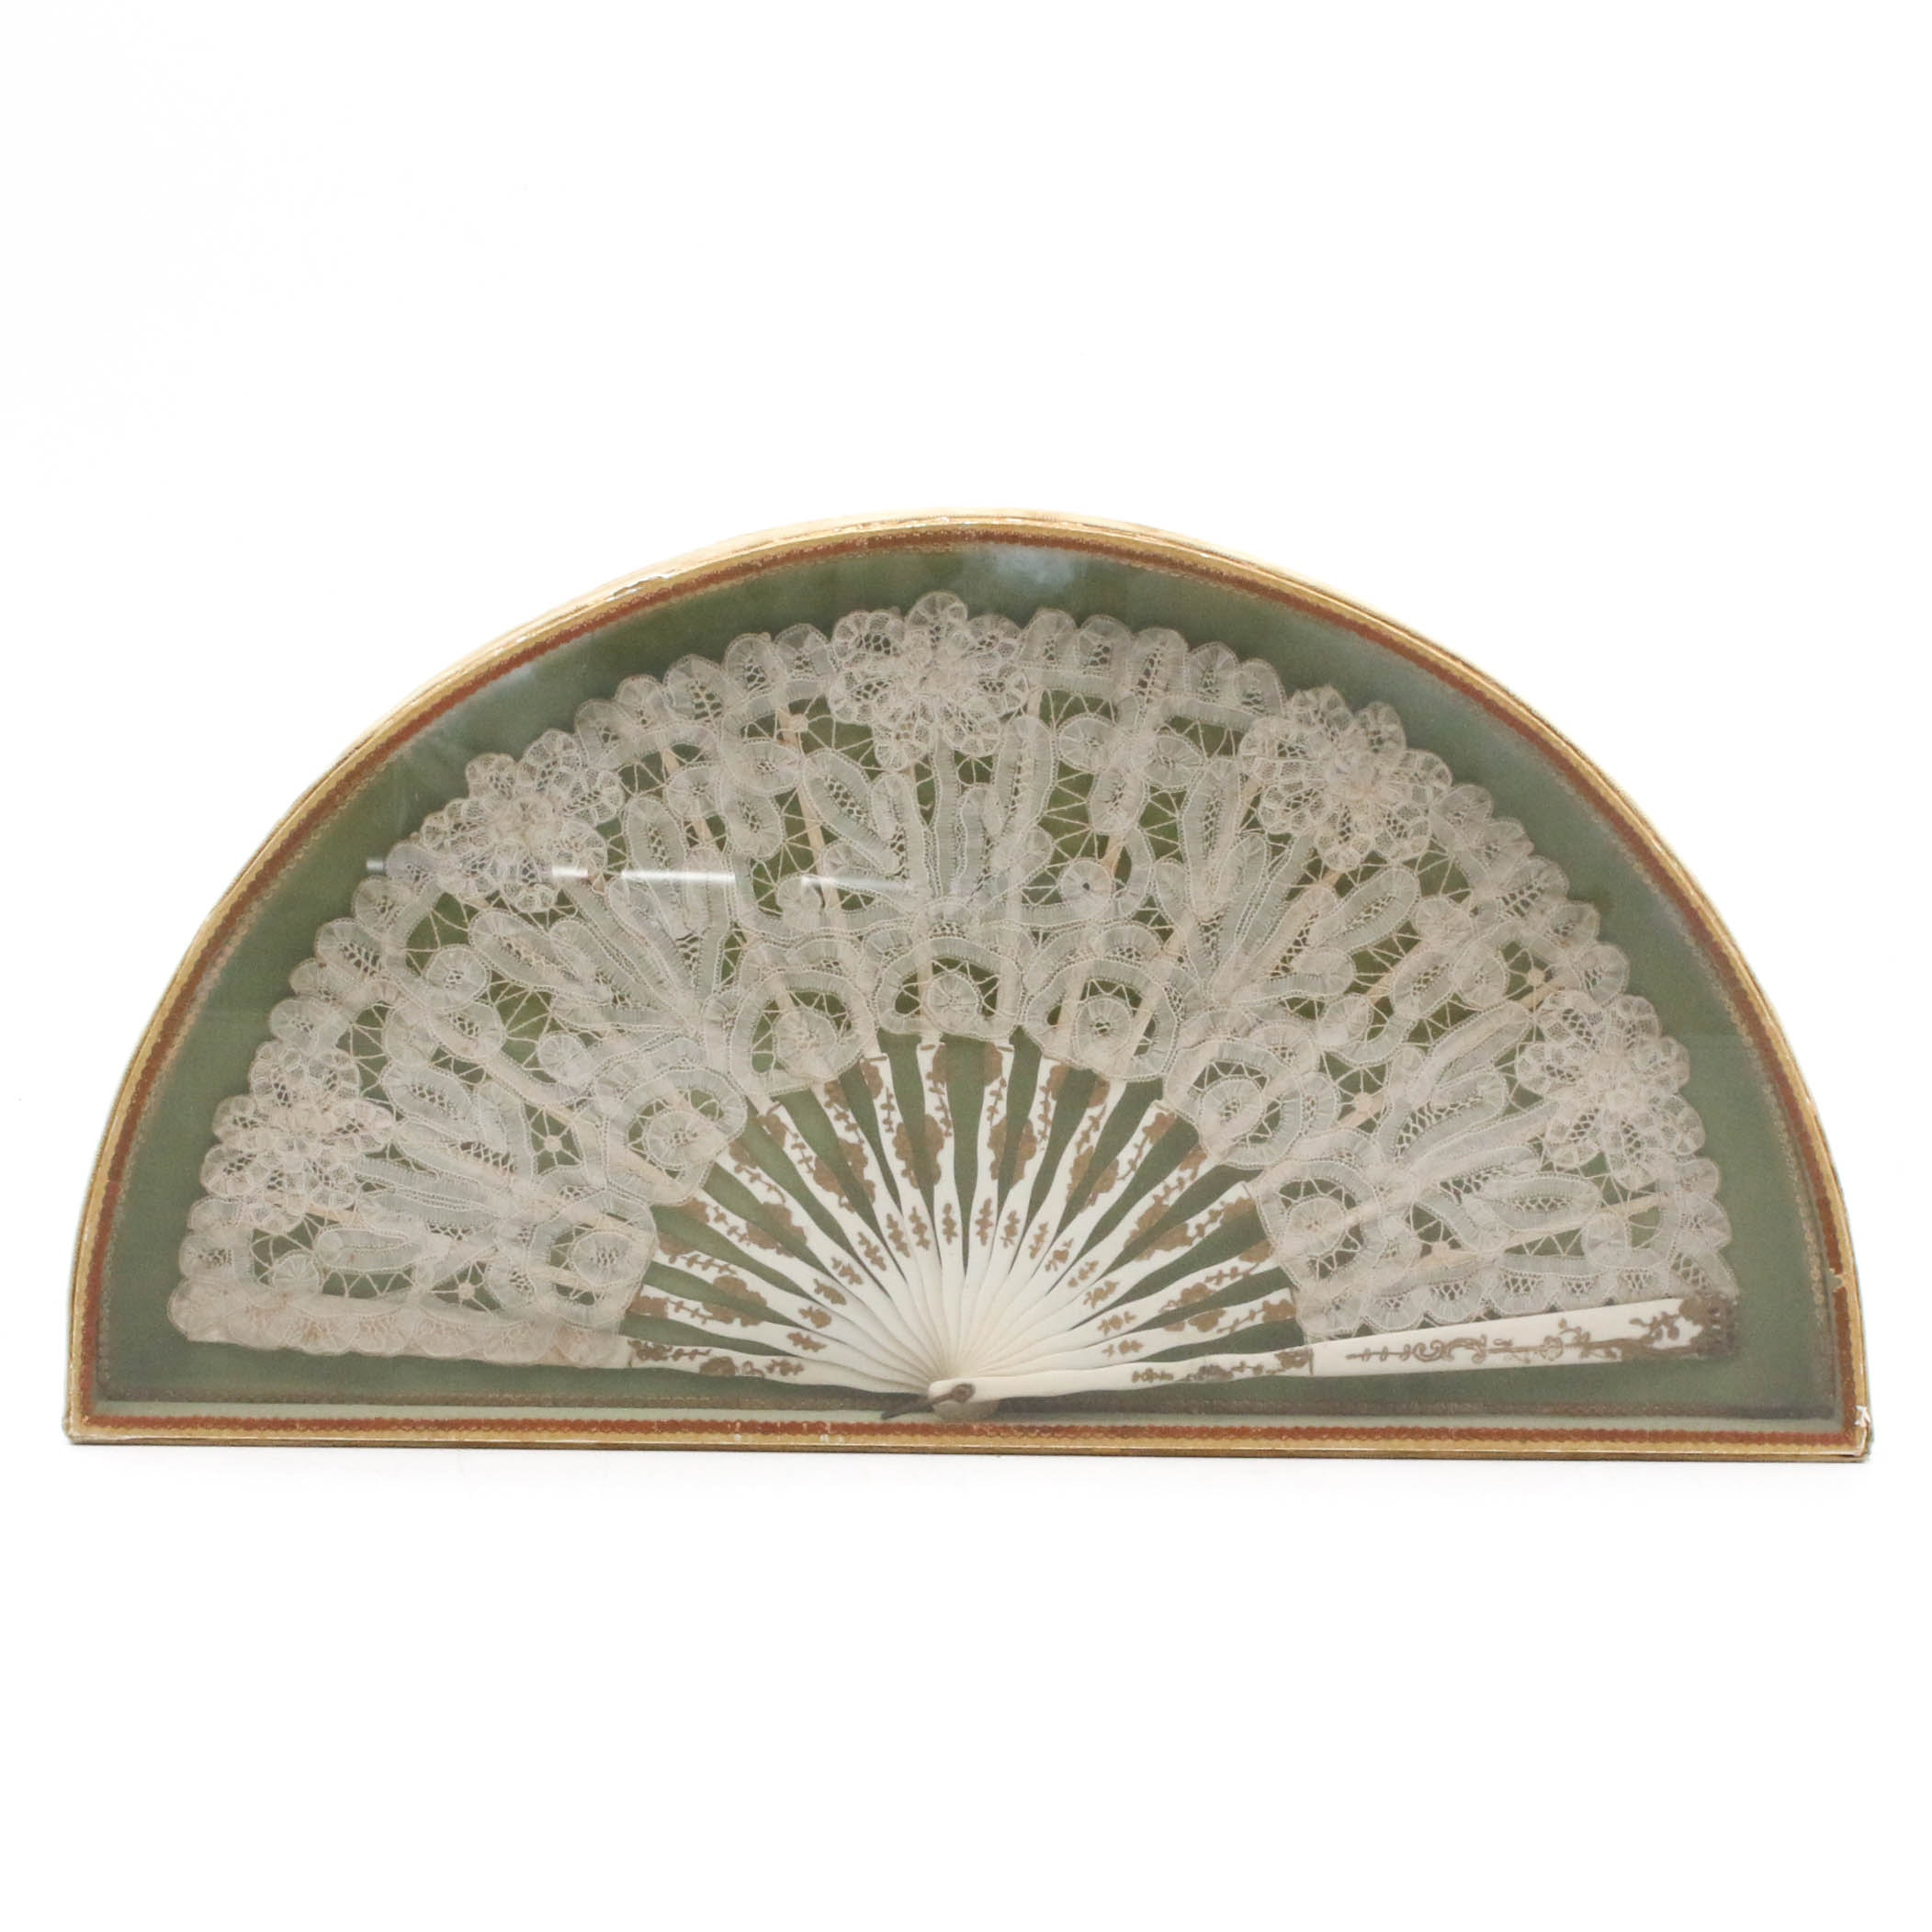 Antique Handmade Lace and Carved Bone Fan in Shadowbox, 19th Century